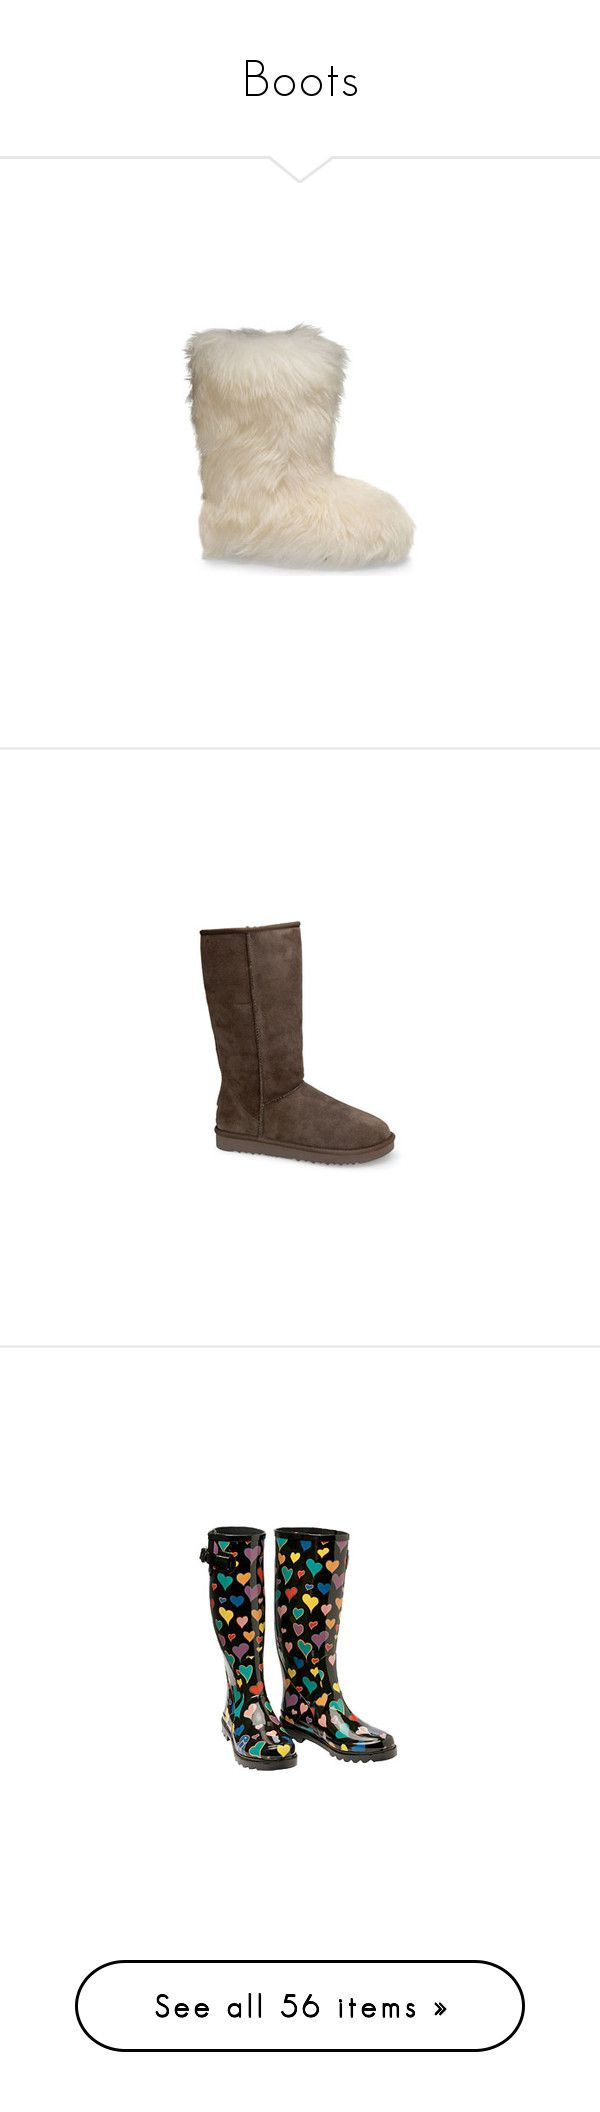 """""""Boots"""" by missskyehamilton ❤ liked on Polyvore featuring men's fashion, men's shoes, men's boots, shoes, boots, uggs, white, zapatos, mens white shoes and mens sheepskin boots"""